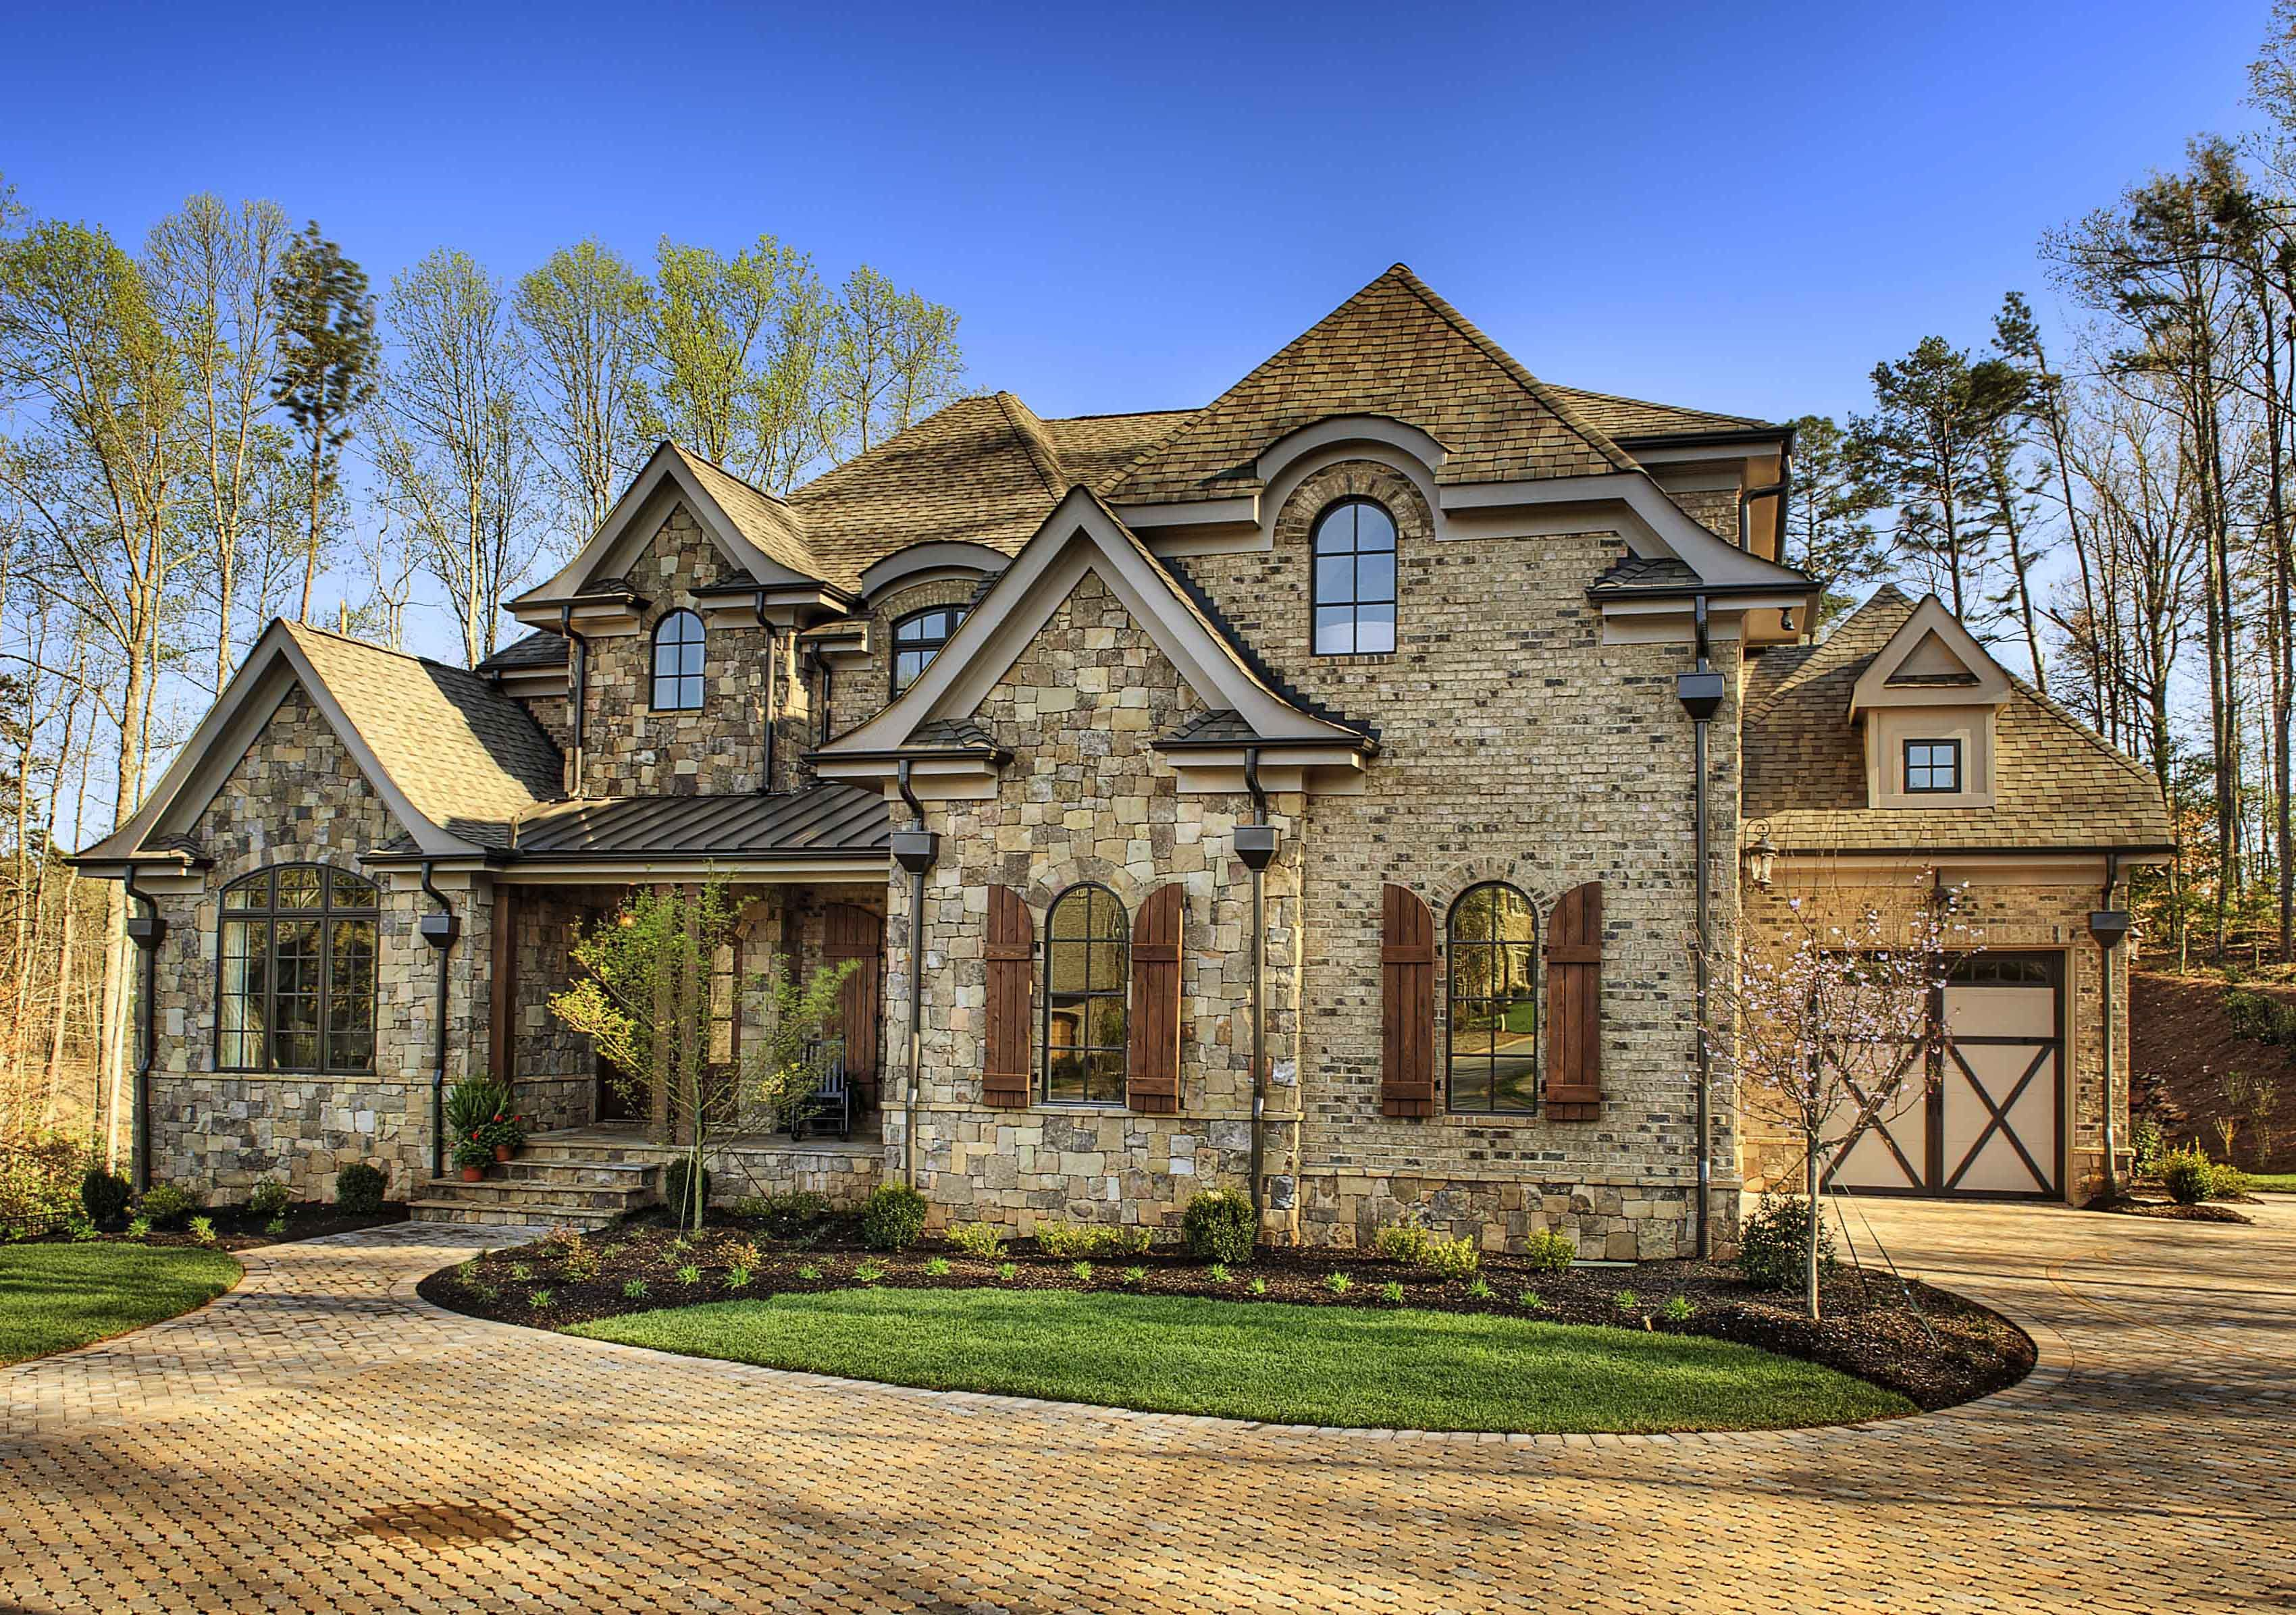 Plan 15794GE: Exquisite Master Down European Manor